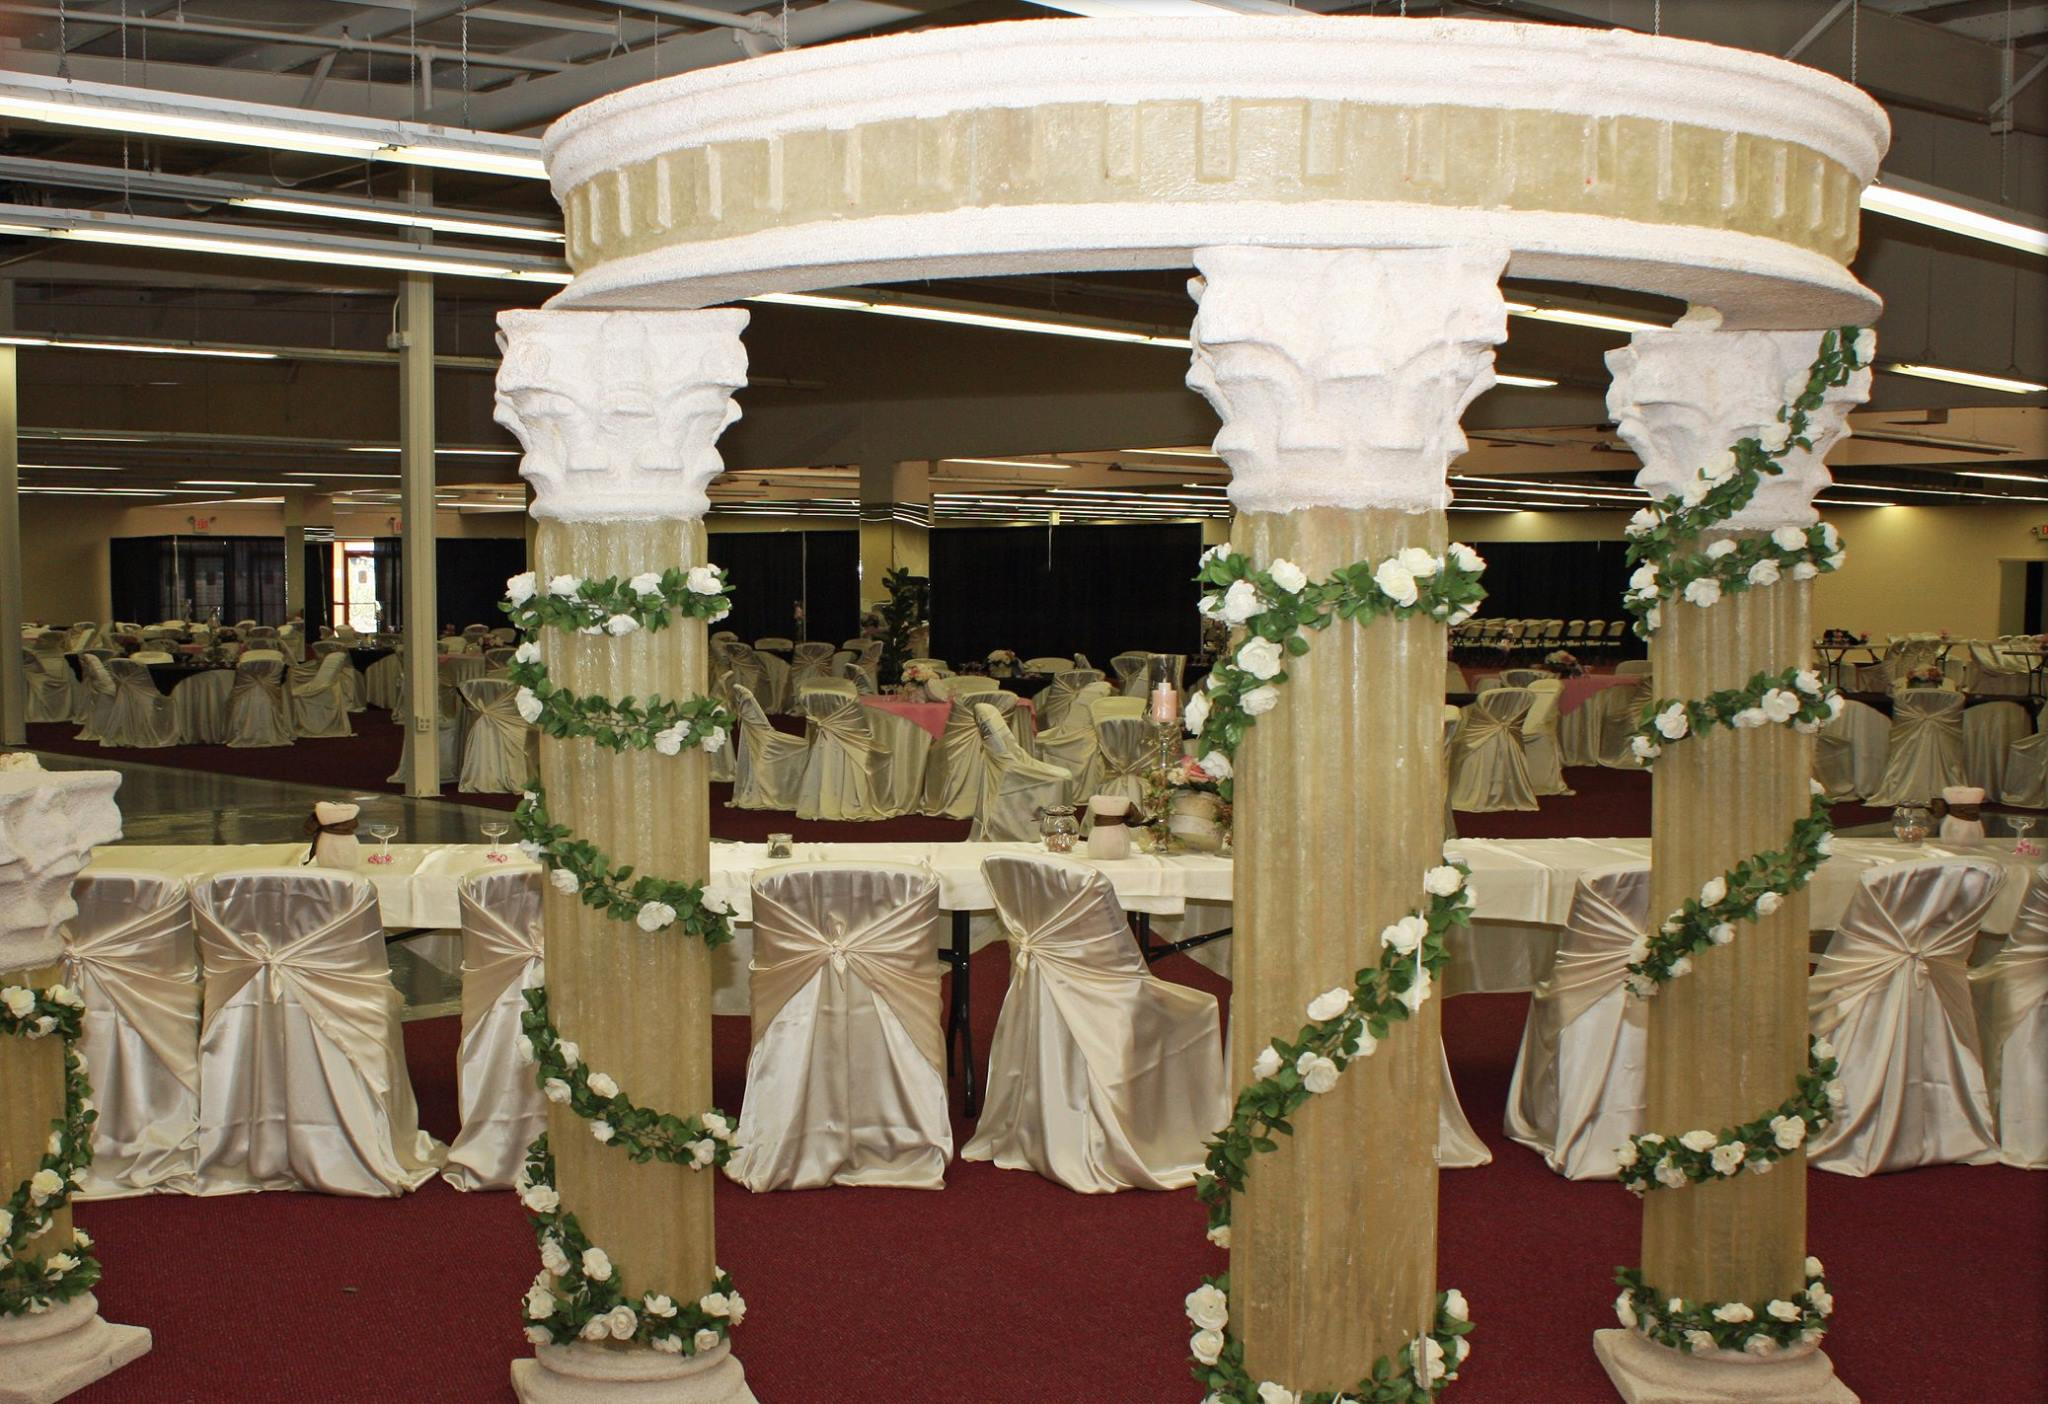 Host your wedding at the tucson expo center in arizona tucson expo when you rent a ballroom or hall for your wedding banquet at the tucson expo center youll be getting so much more than just room for all your guests junglespirit Images